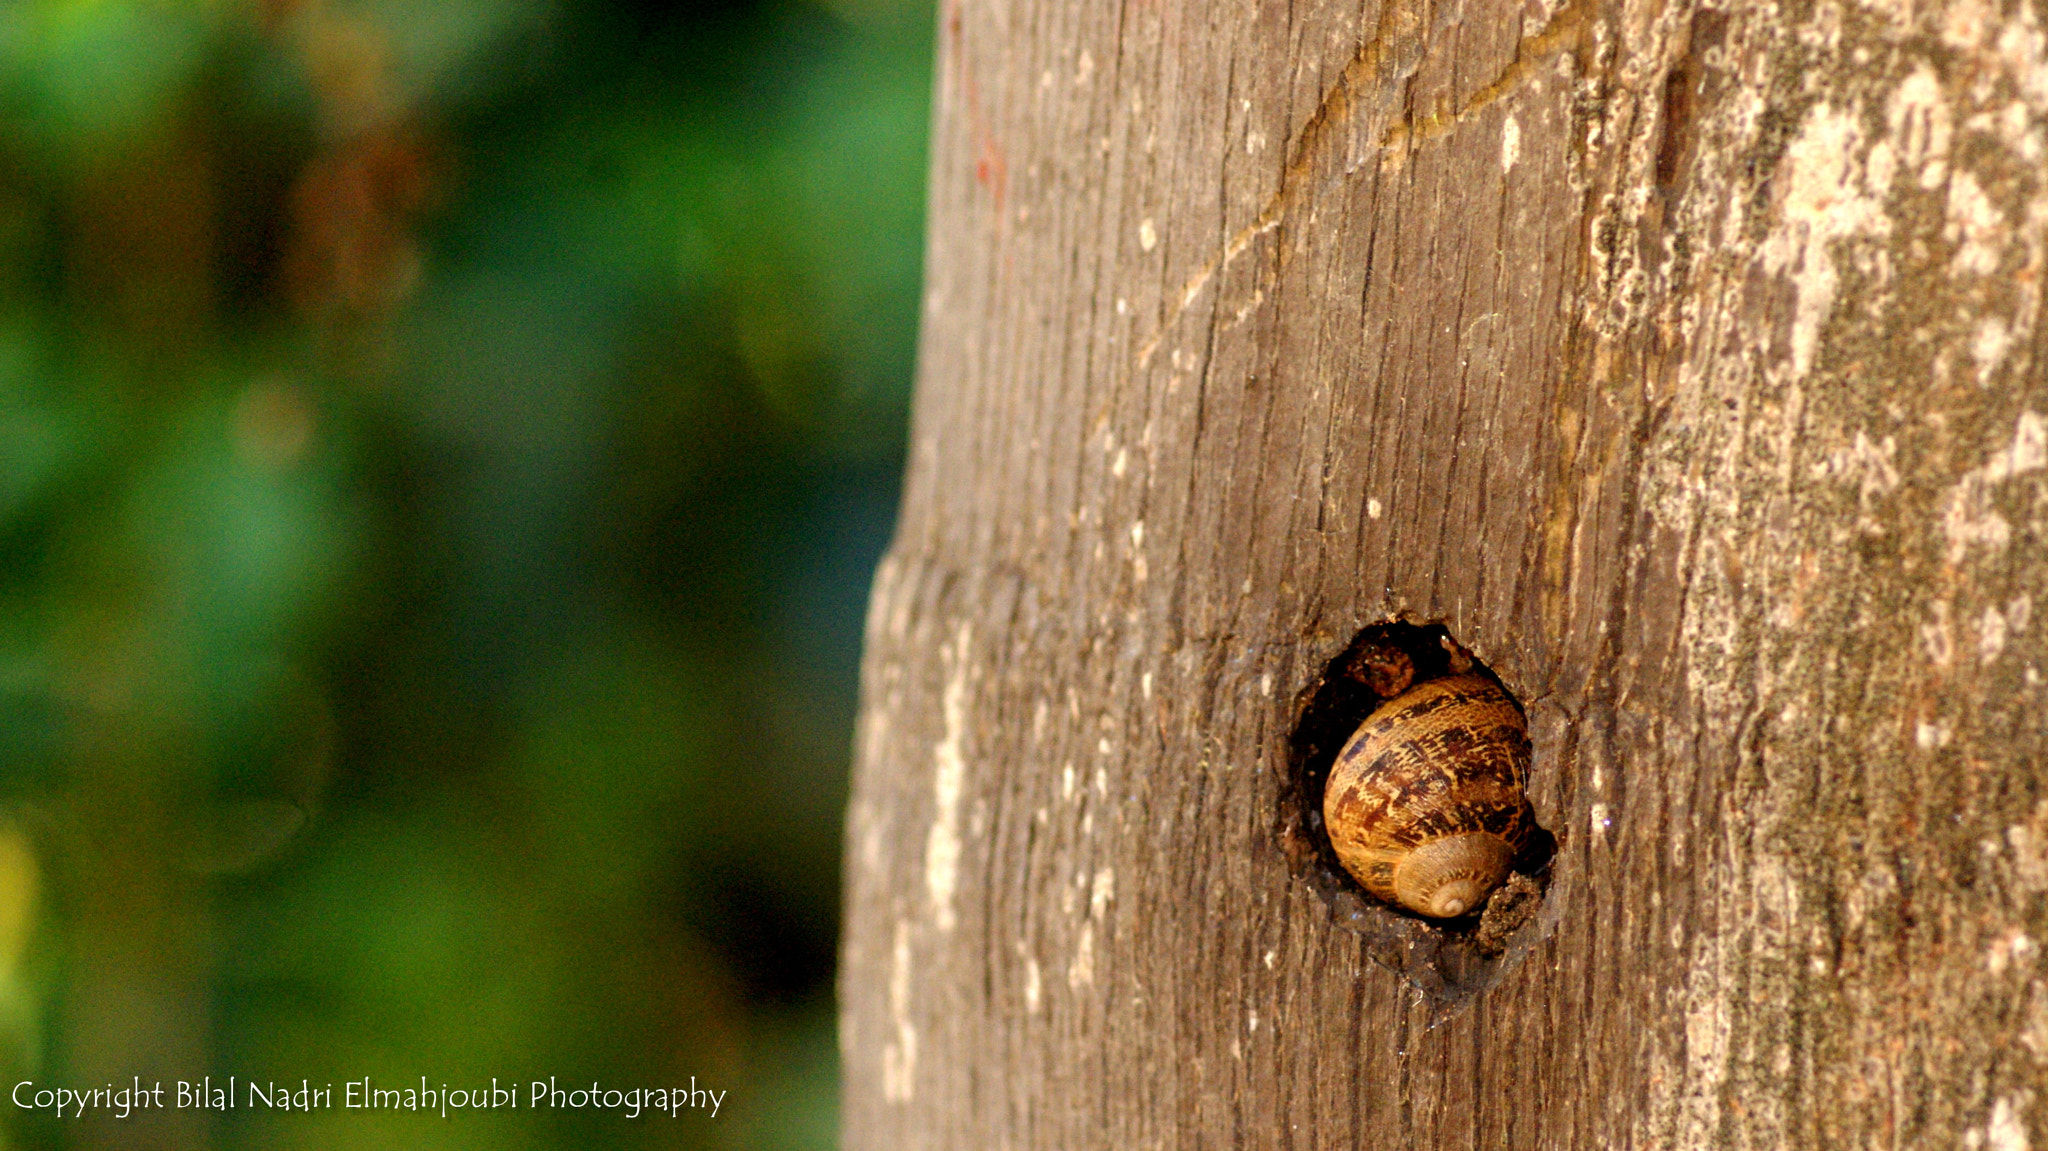 Photograph Escargot  by Bilal Nadri on 500px